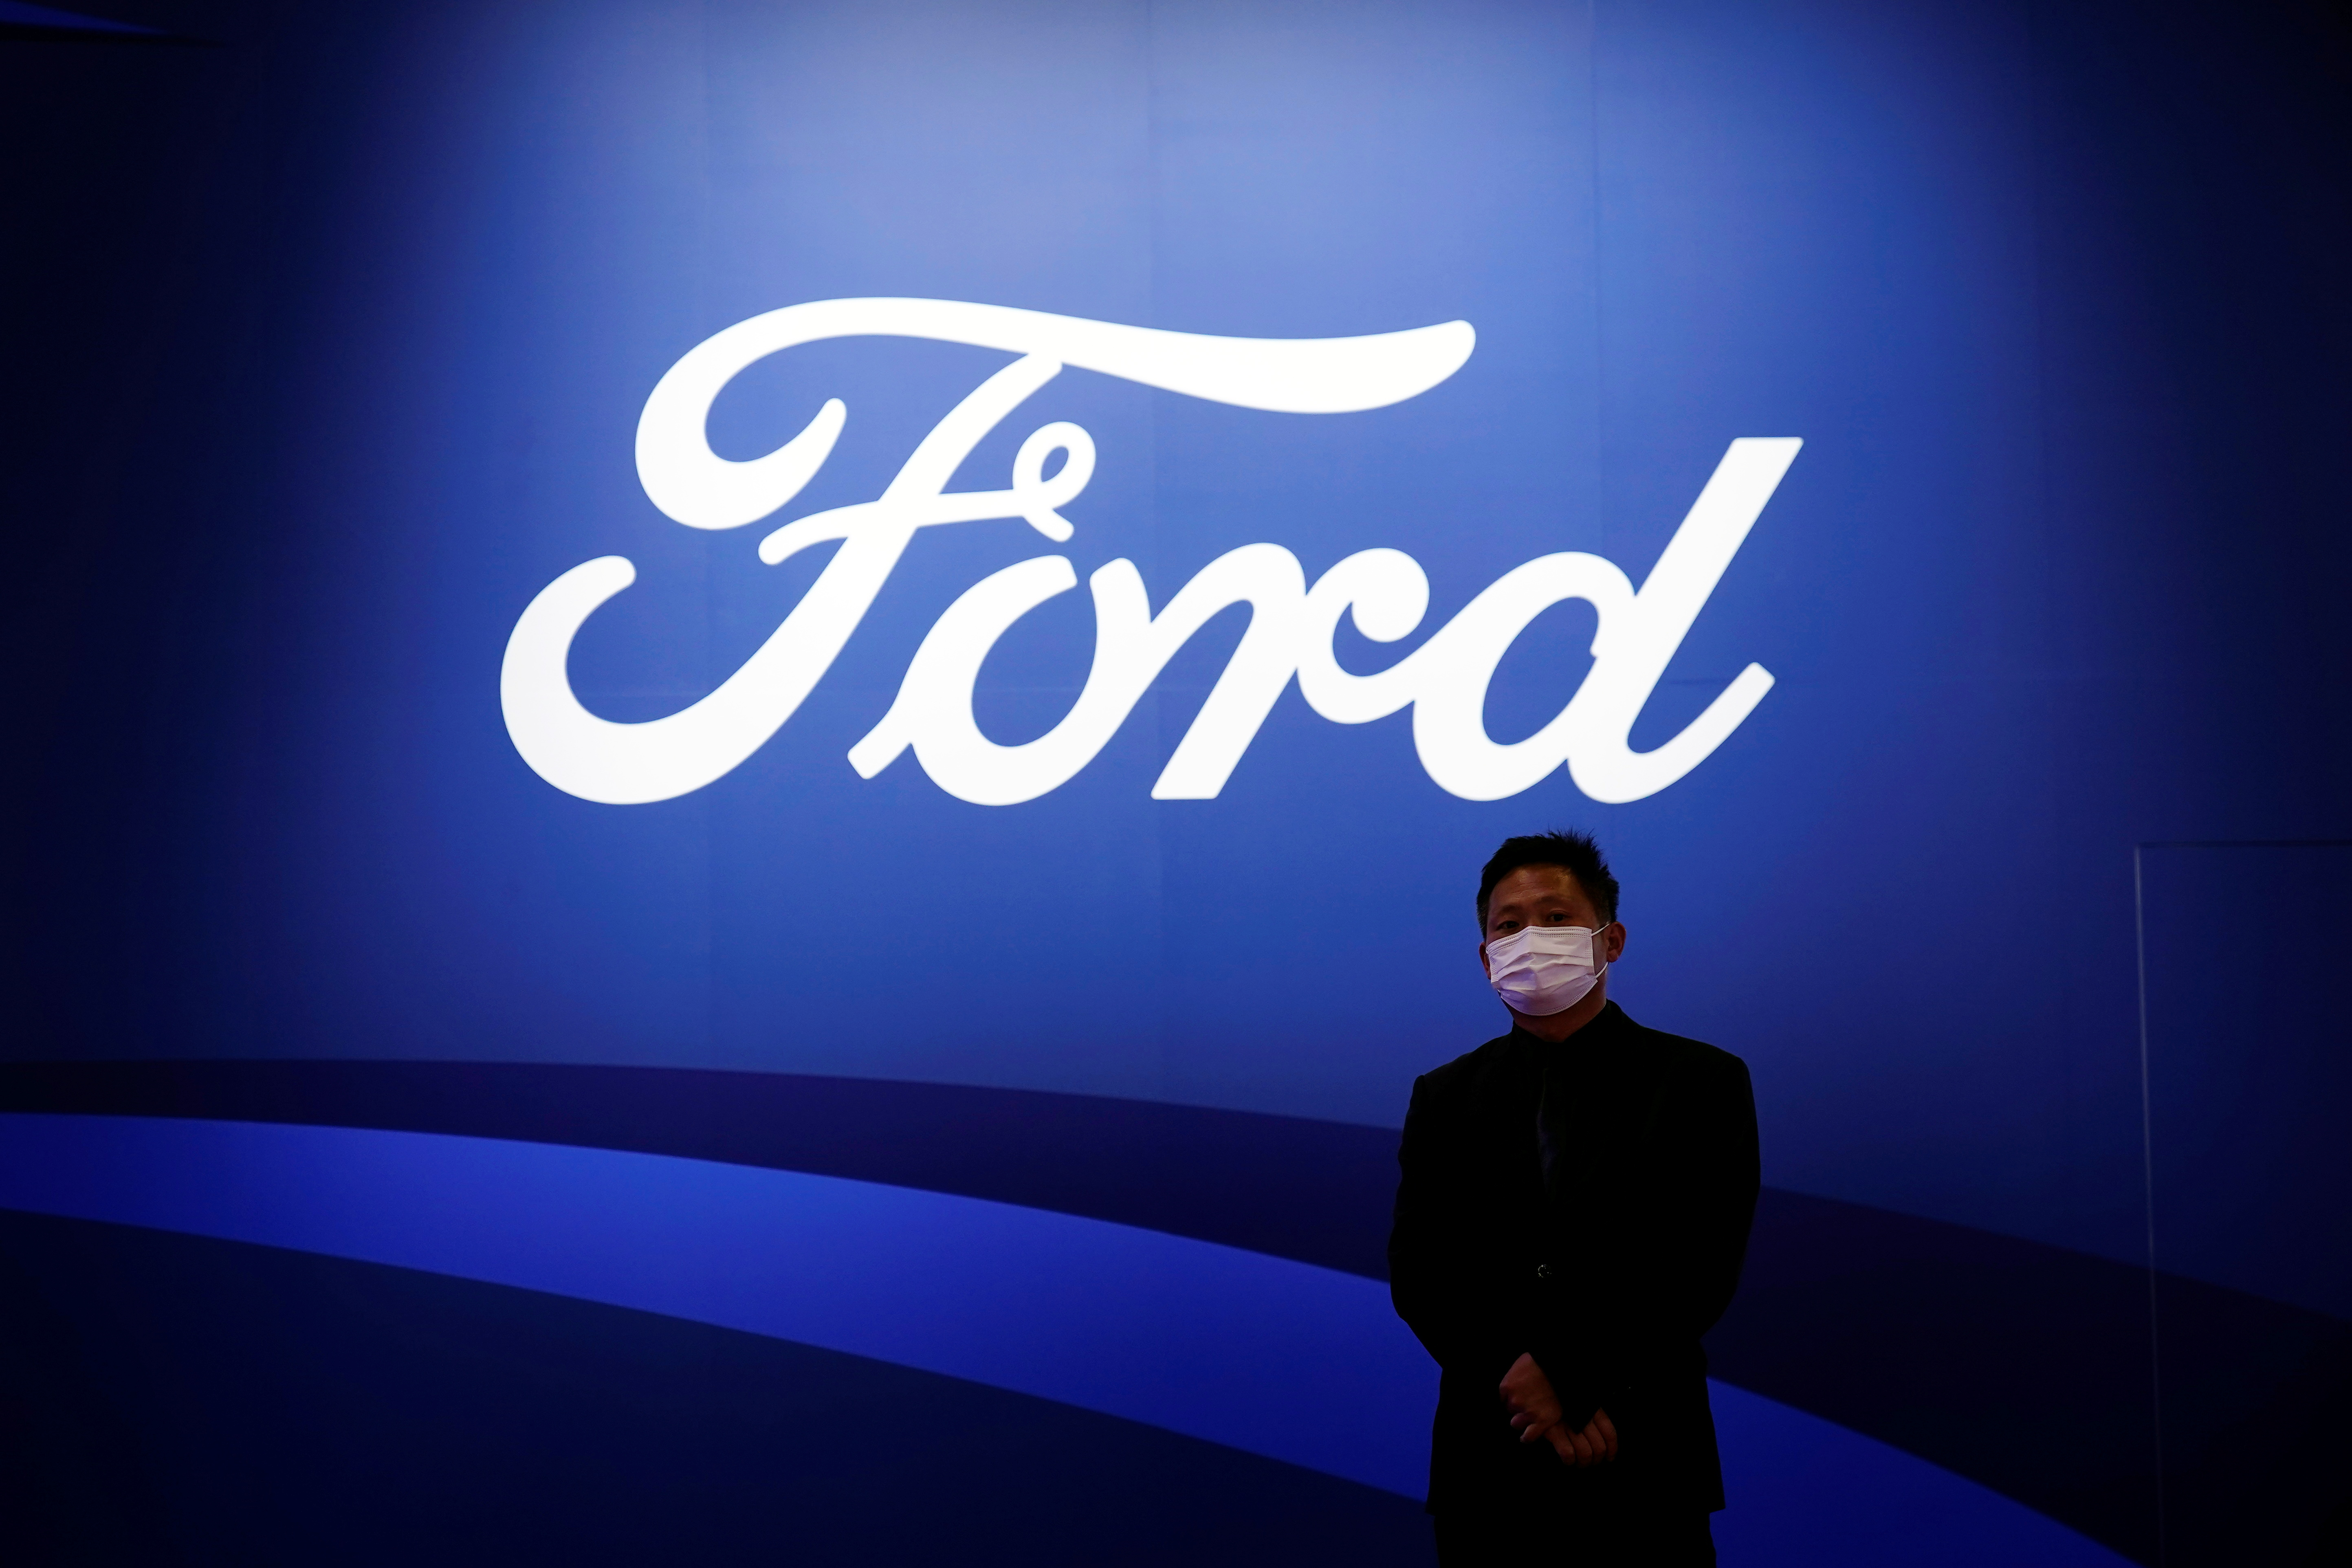 A man stands near the Ford logo during a media day for the Auto Shanghai show in Shanghai, China April 19, 2021. REUTERS/Aly Song/Files